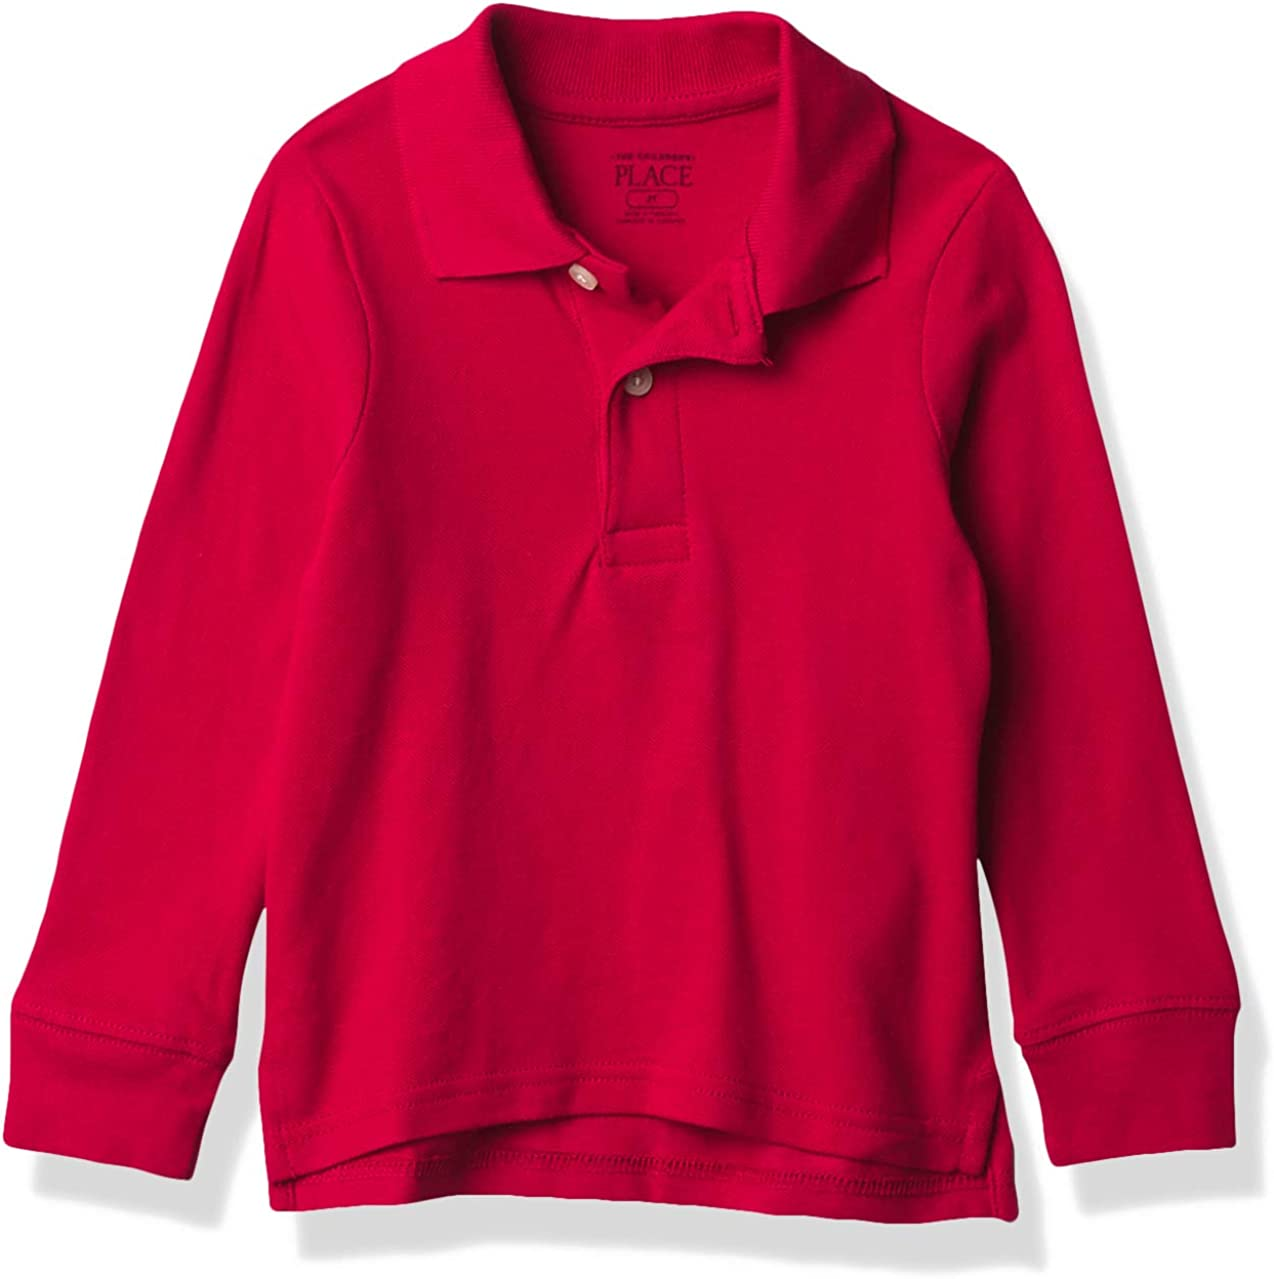 The Children's Place Boys' Baby and Toddler Uniform Long Sleeve Pique Polo